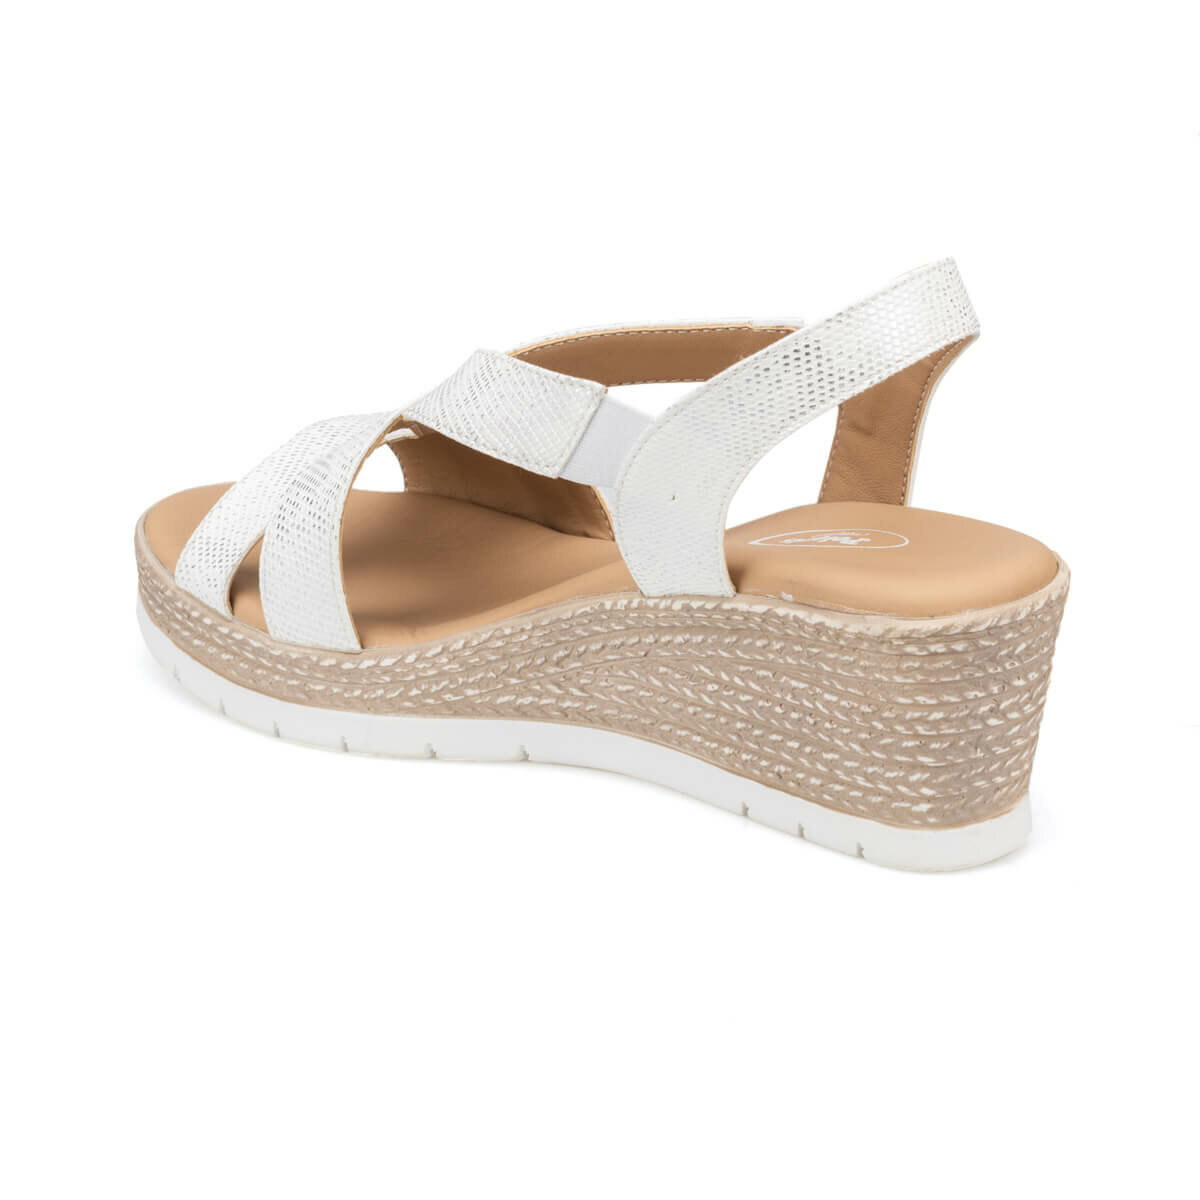 FLO White Pink Women Sandals Women Summer Sandals Slip-on Flat Ladies Sandals Comfy Wedge Female Shoes Fashion Breathable Girls Sandals Polaris 91. 150722.Z